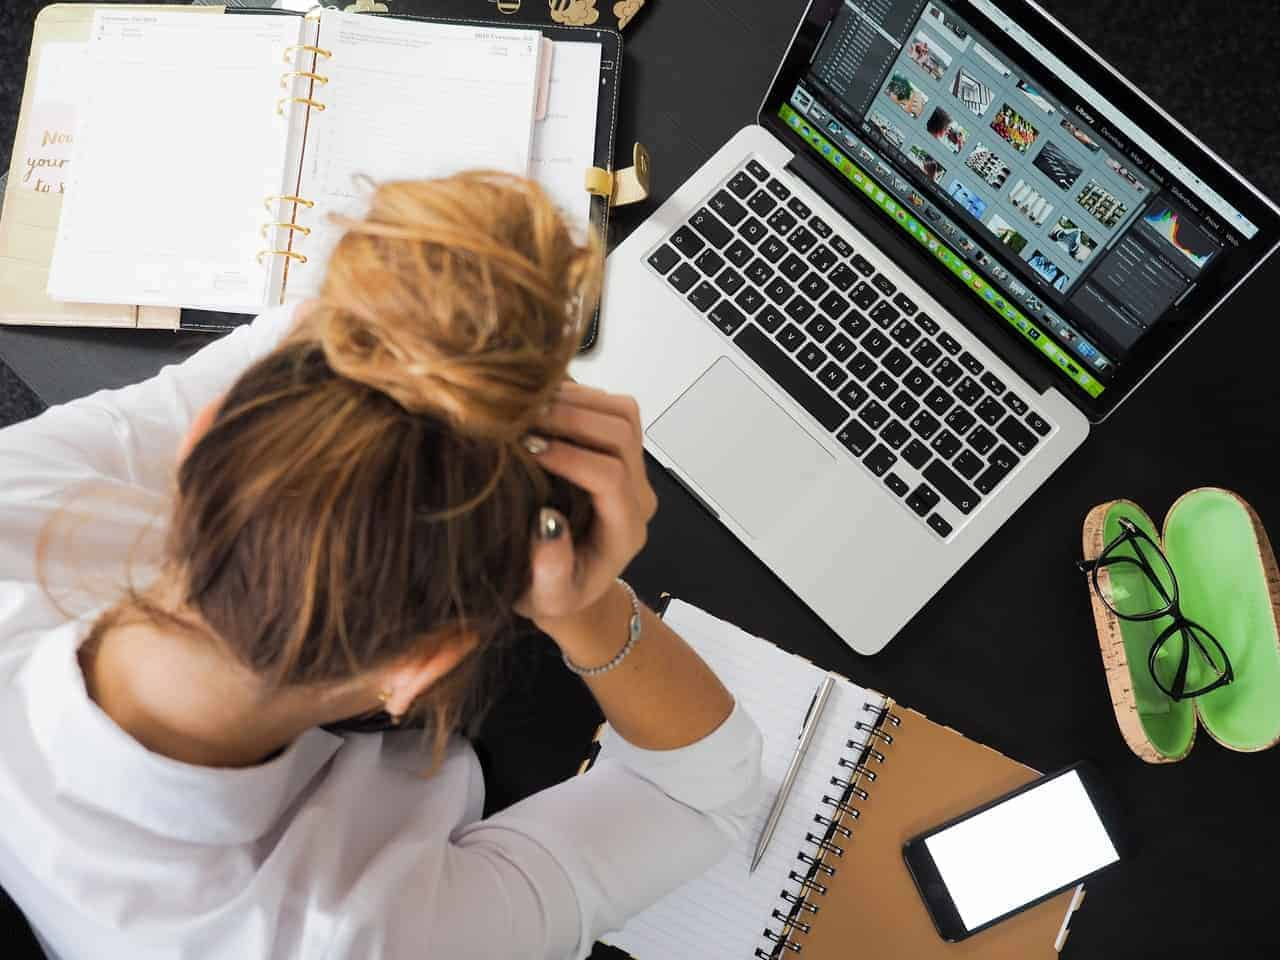 Stressed woman working on laptop